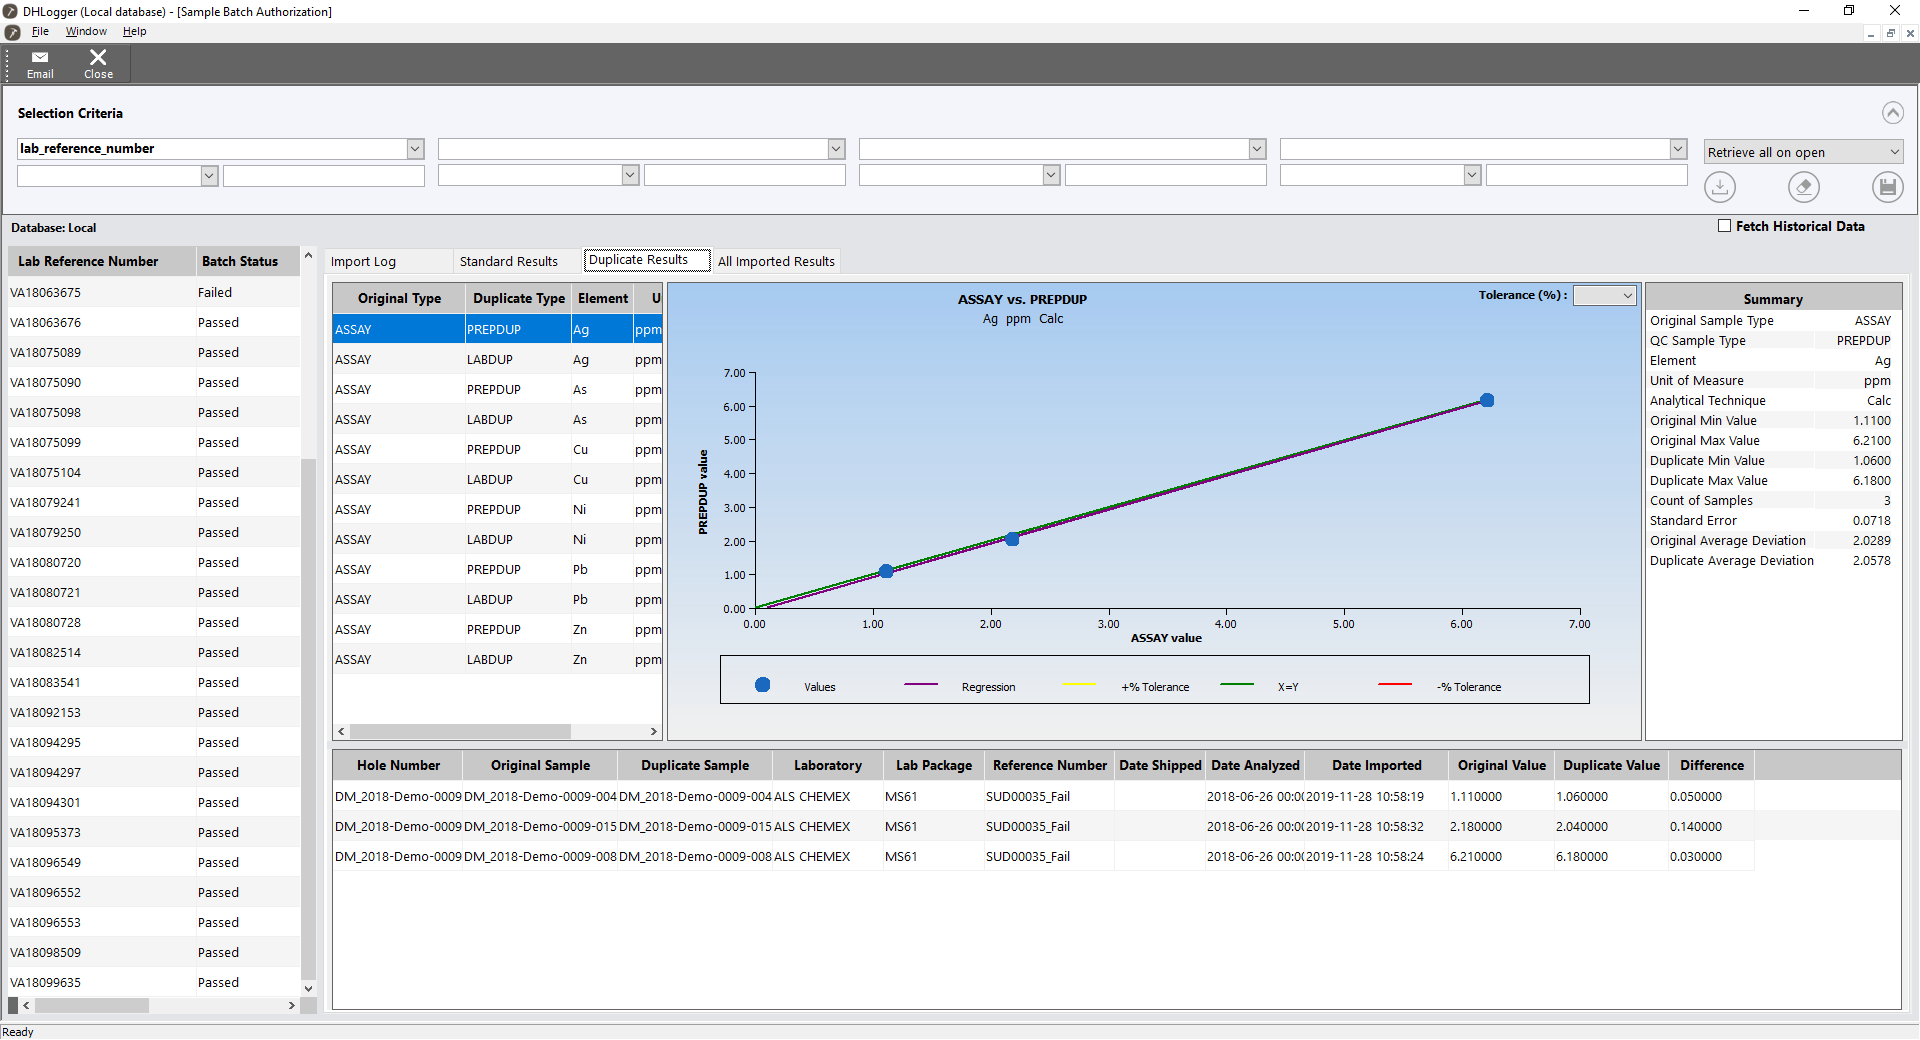 an assay vesis prepdup graph shown in DHLogger, Fusion's geological drillhole management product.